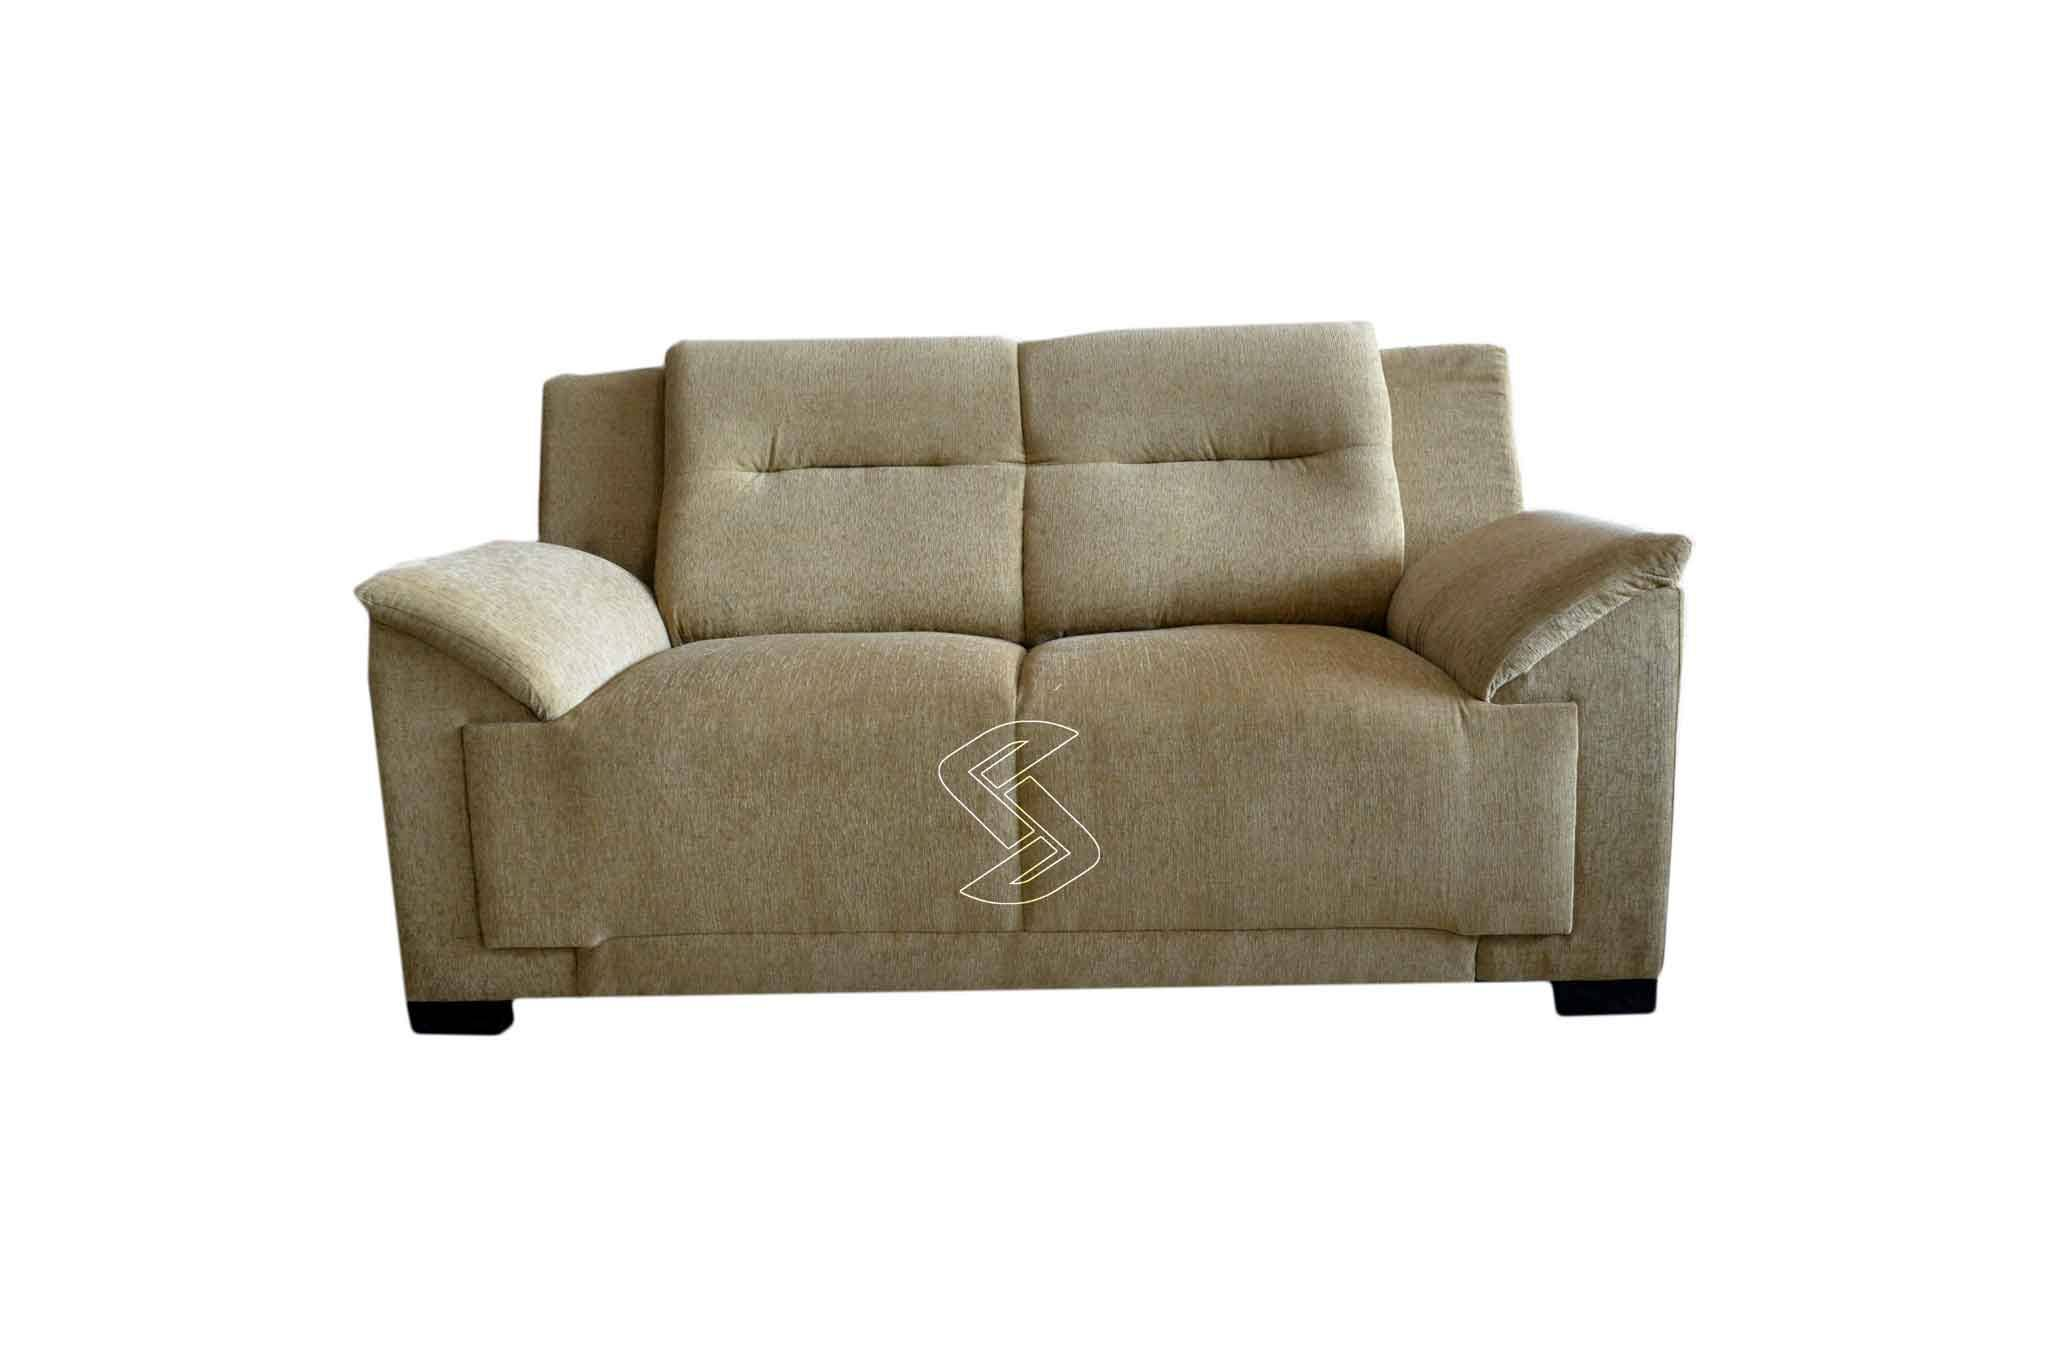 Doxsa Fabric 2-seater Sofa (Beige)